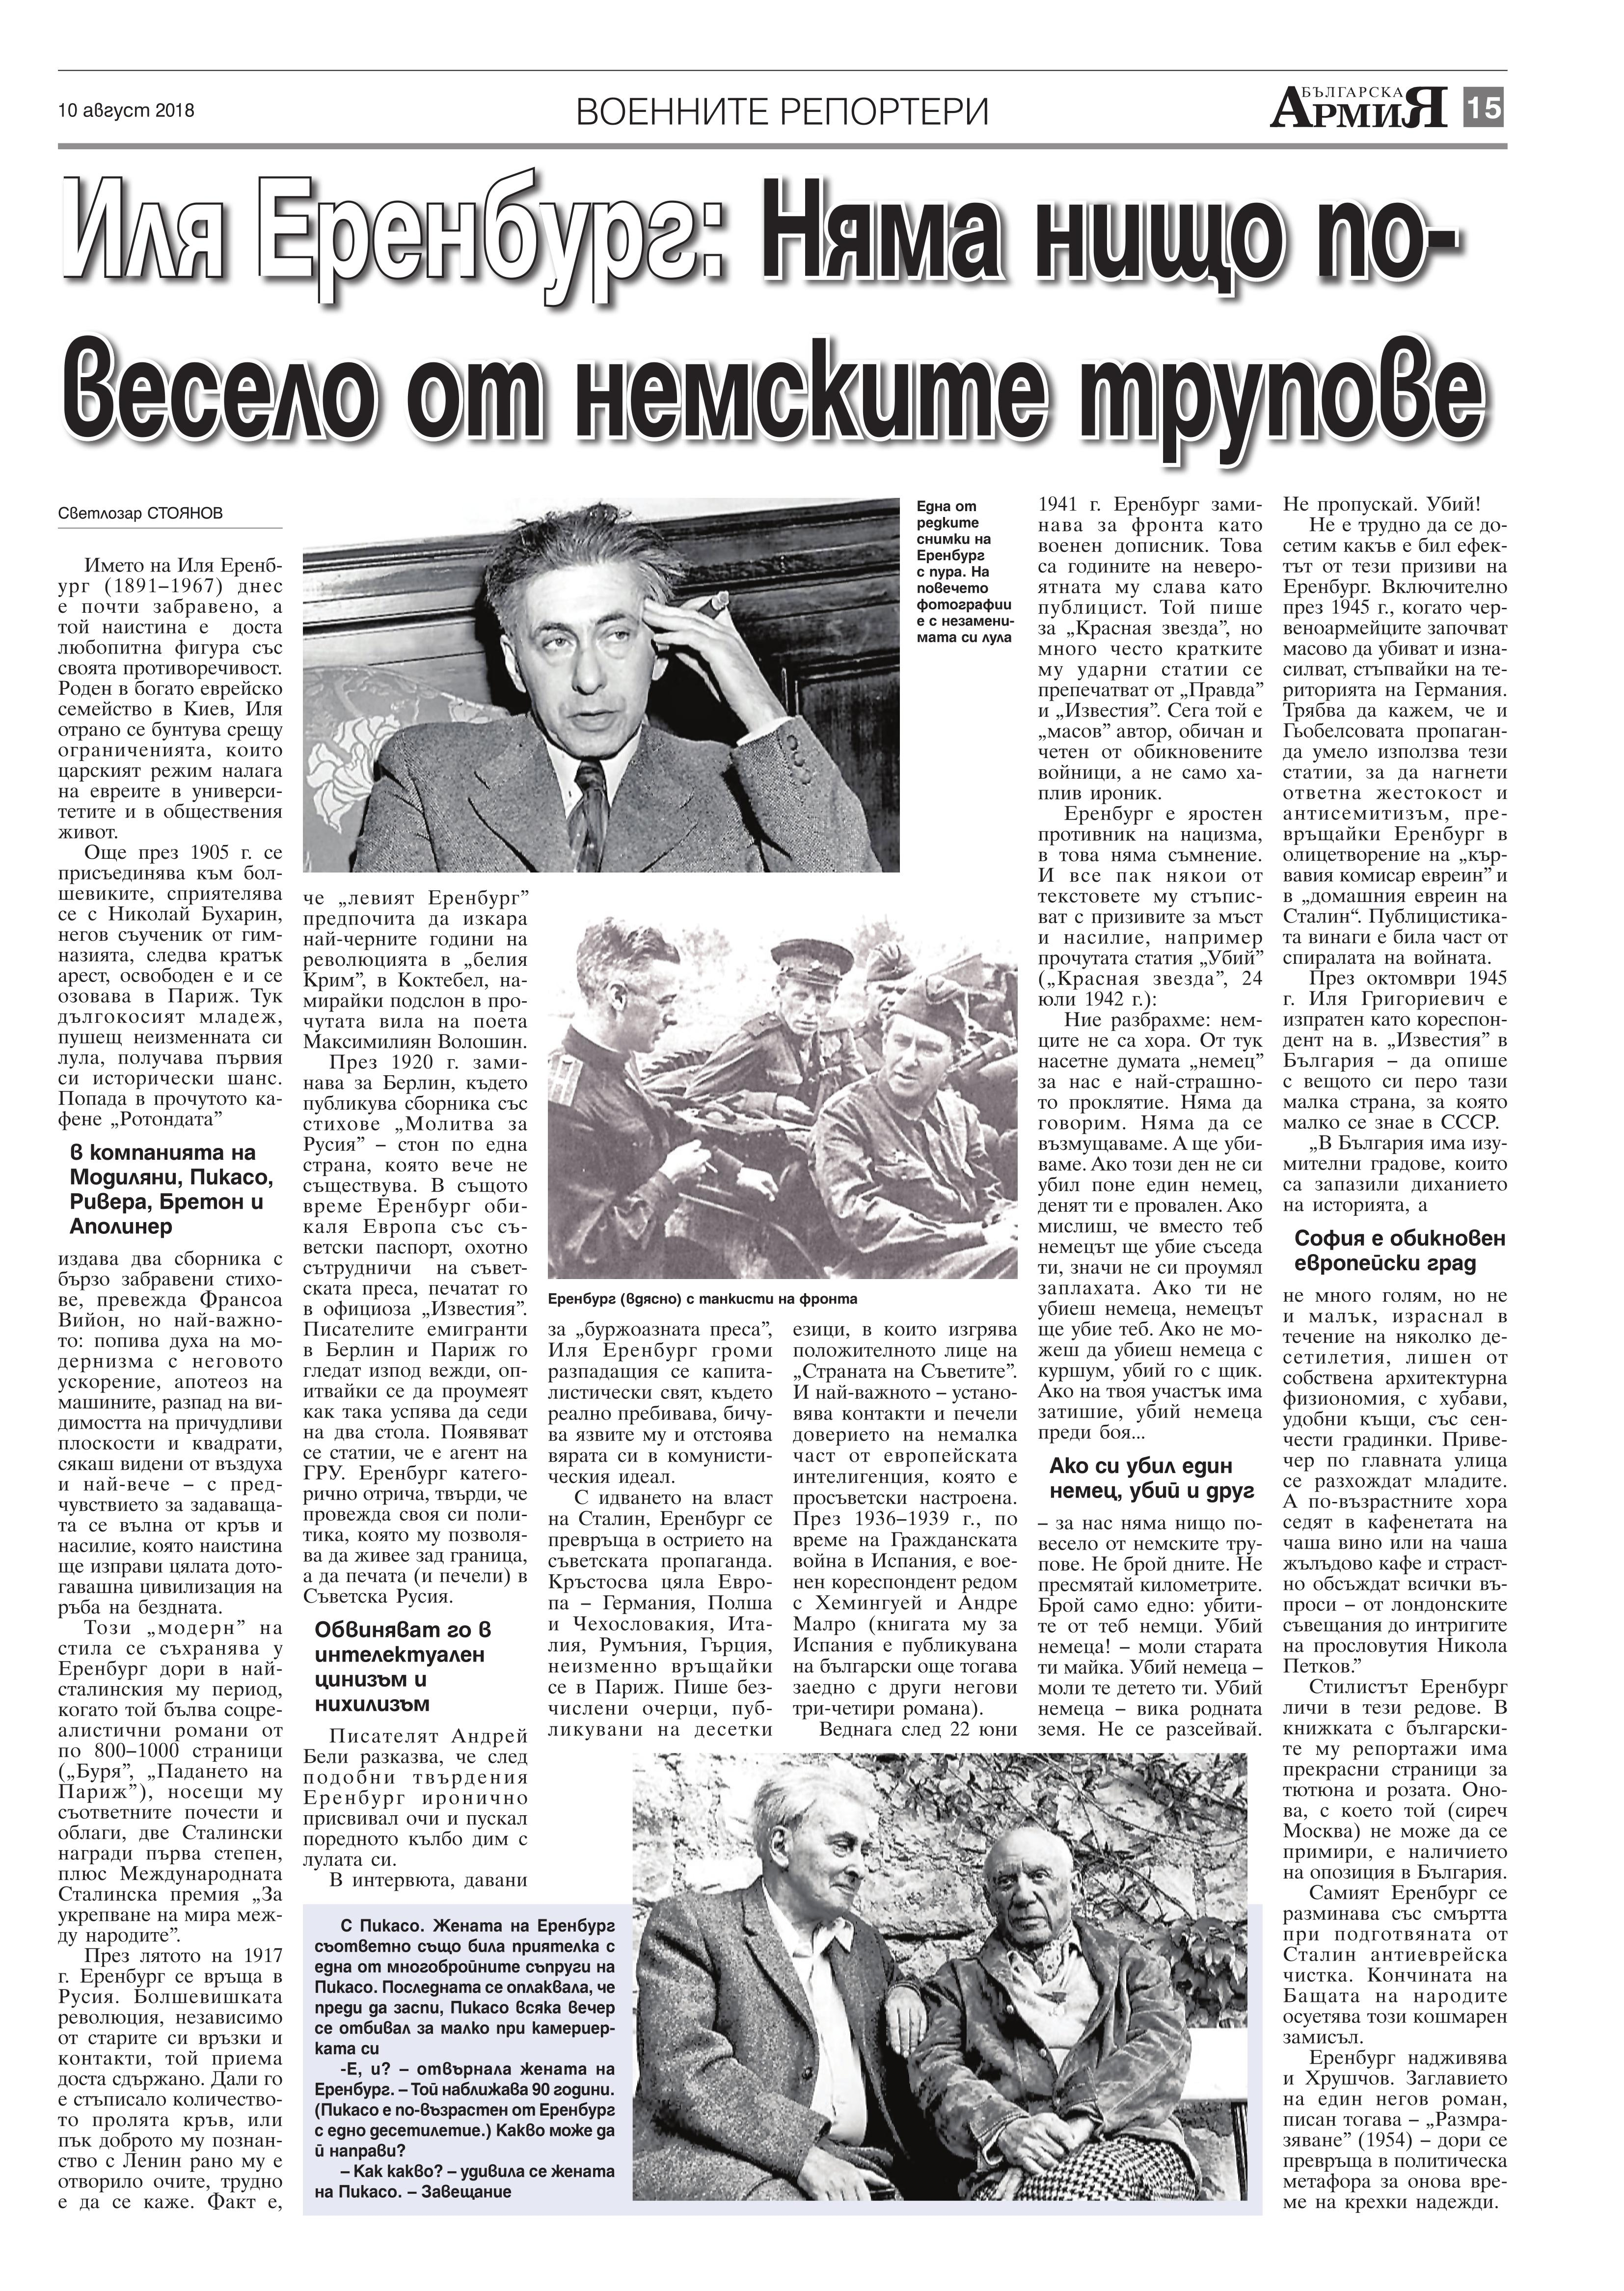 http://armymedia.bg/wp-content/uploads/2015/06/15.page1_-61.jpg